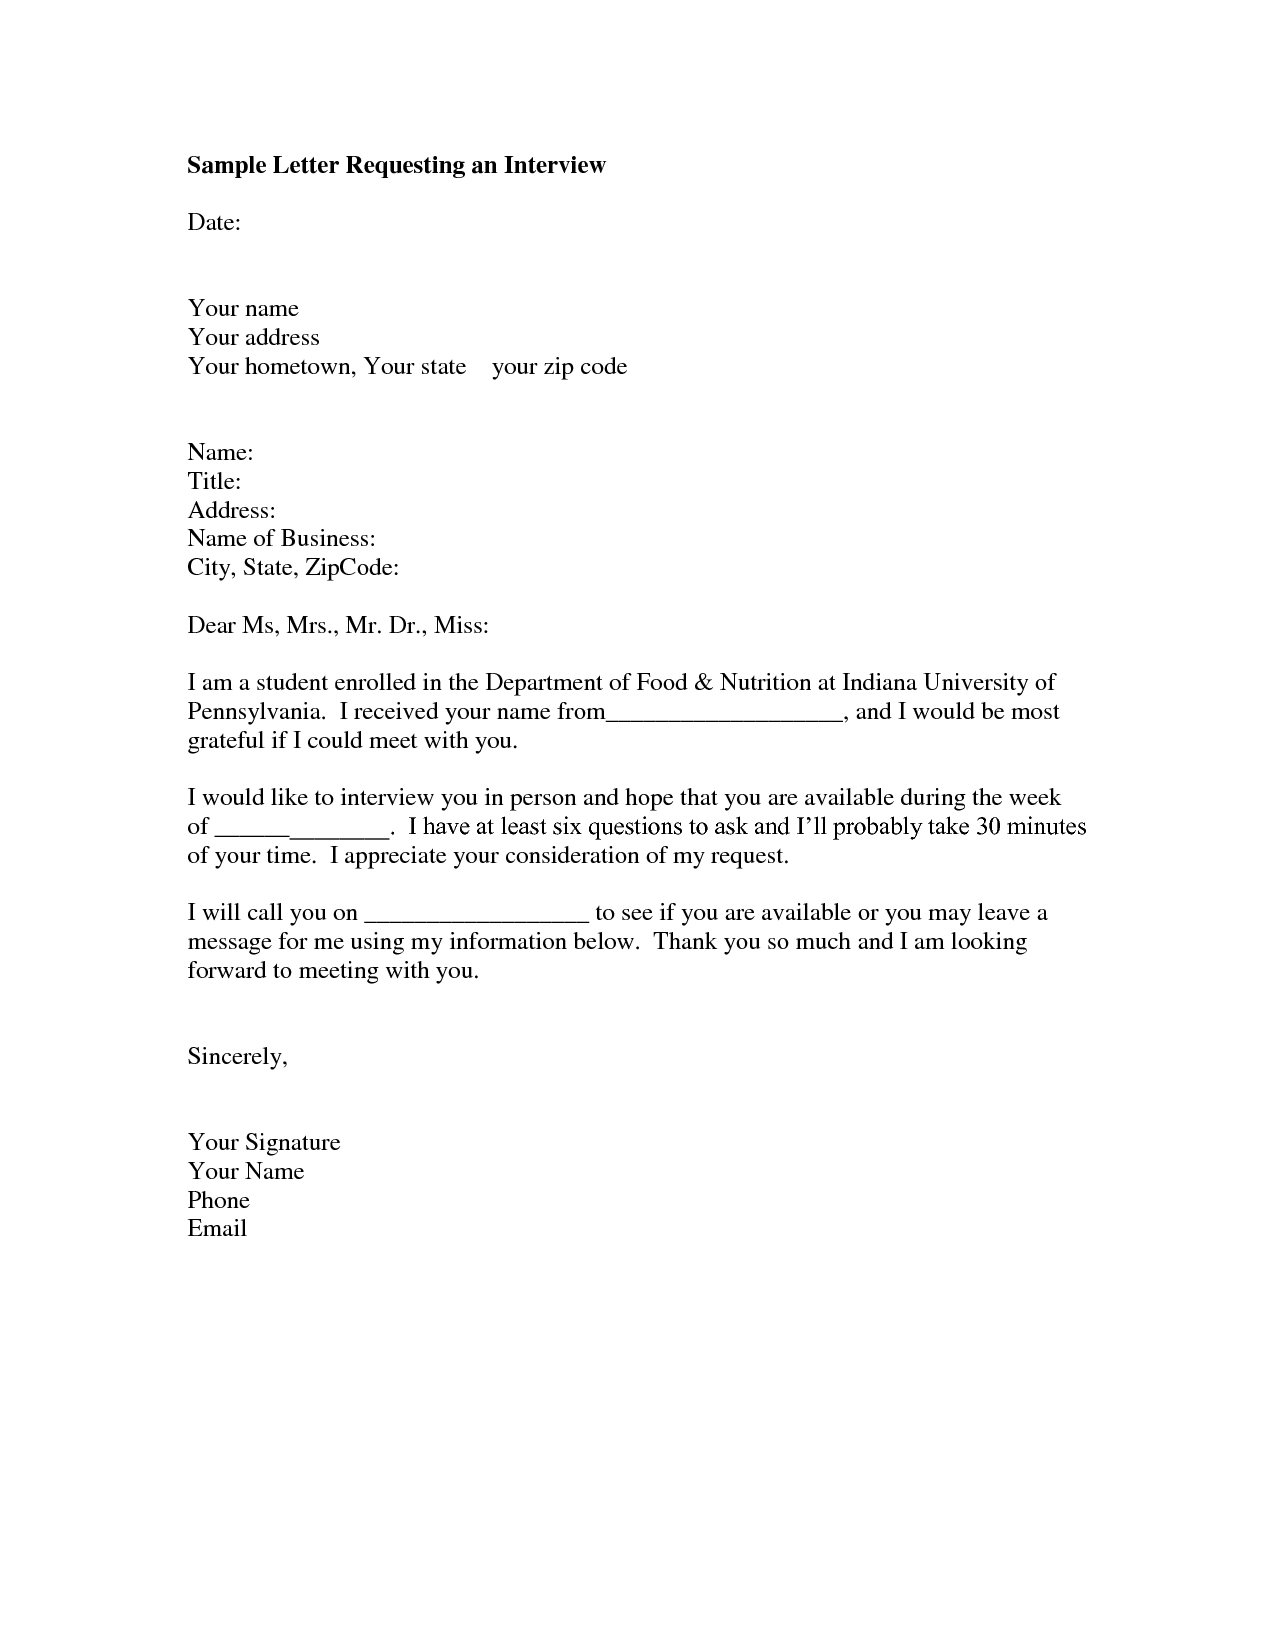 exceptionnel INTERVIEW REQUEST LETTER - sample format of a letter you can use to request  an interview with a prospecitive employer.